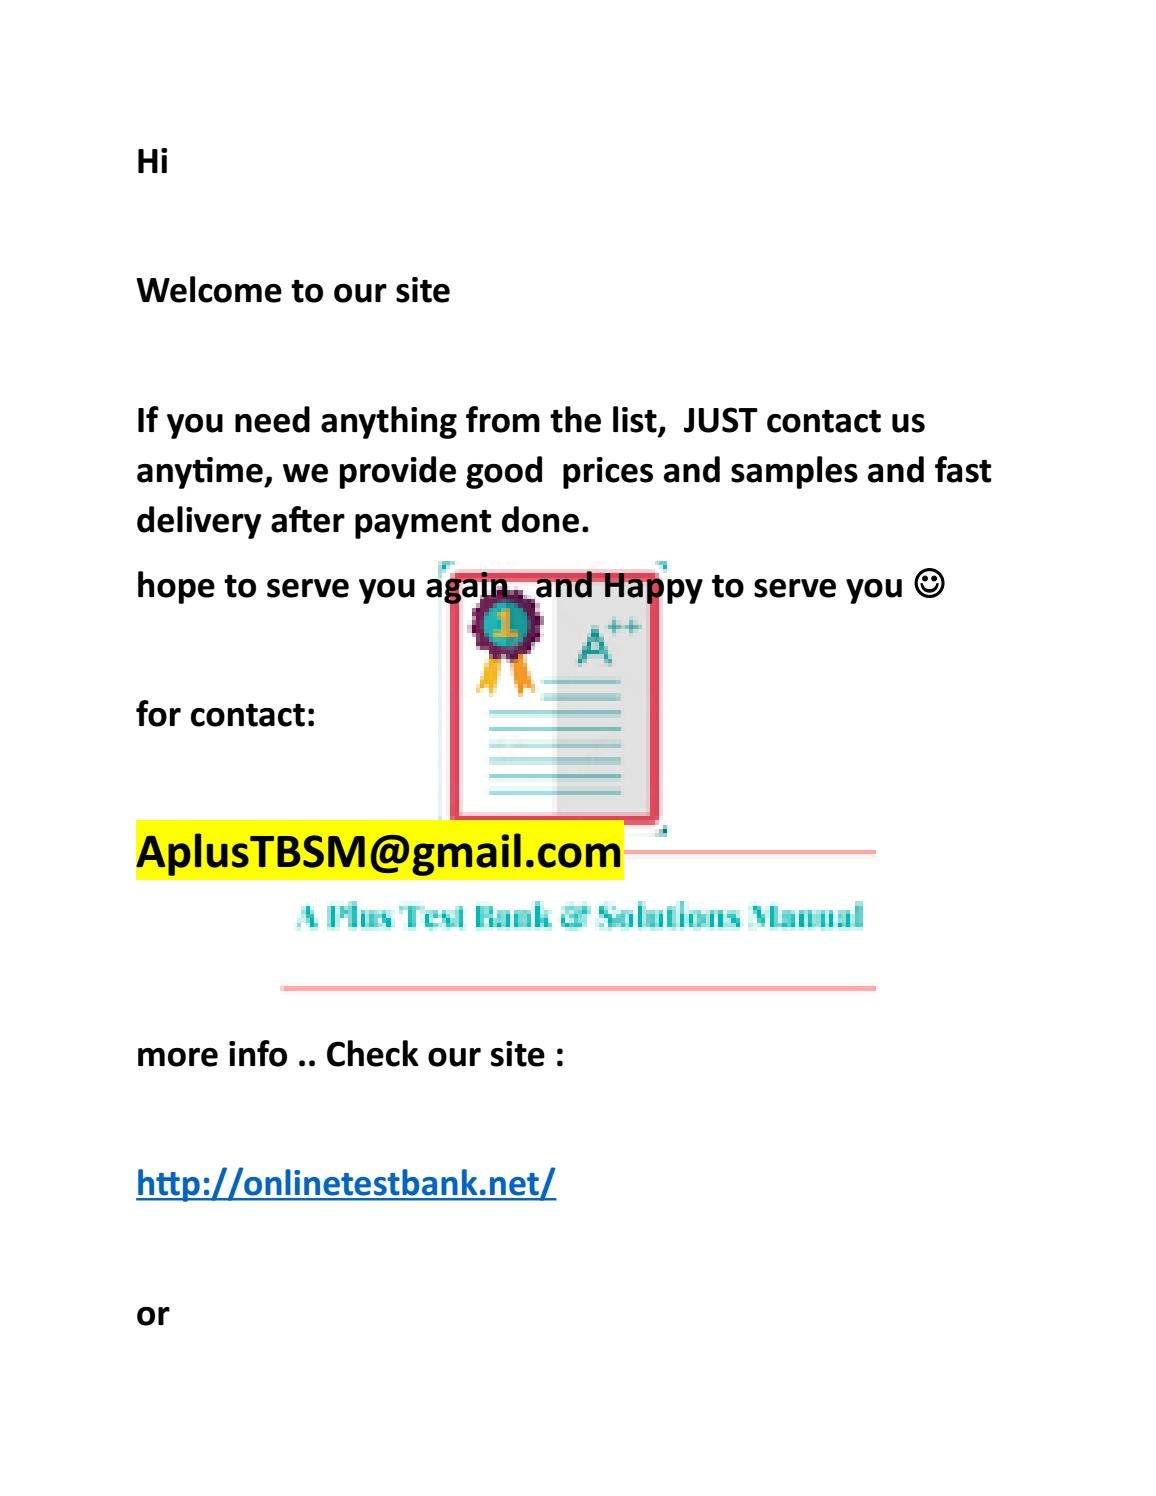 Test bank and Soluiton 2018 -2019 list 4 by A plus for Test bank and  Solution manual - issuu